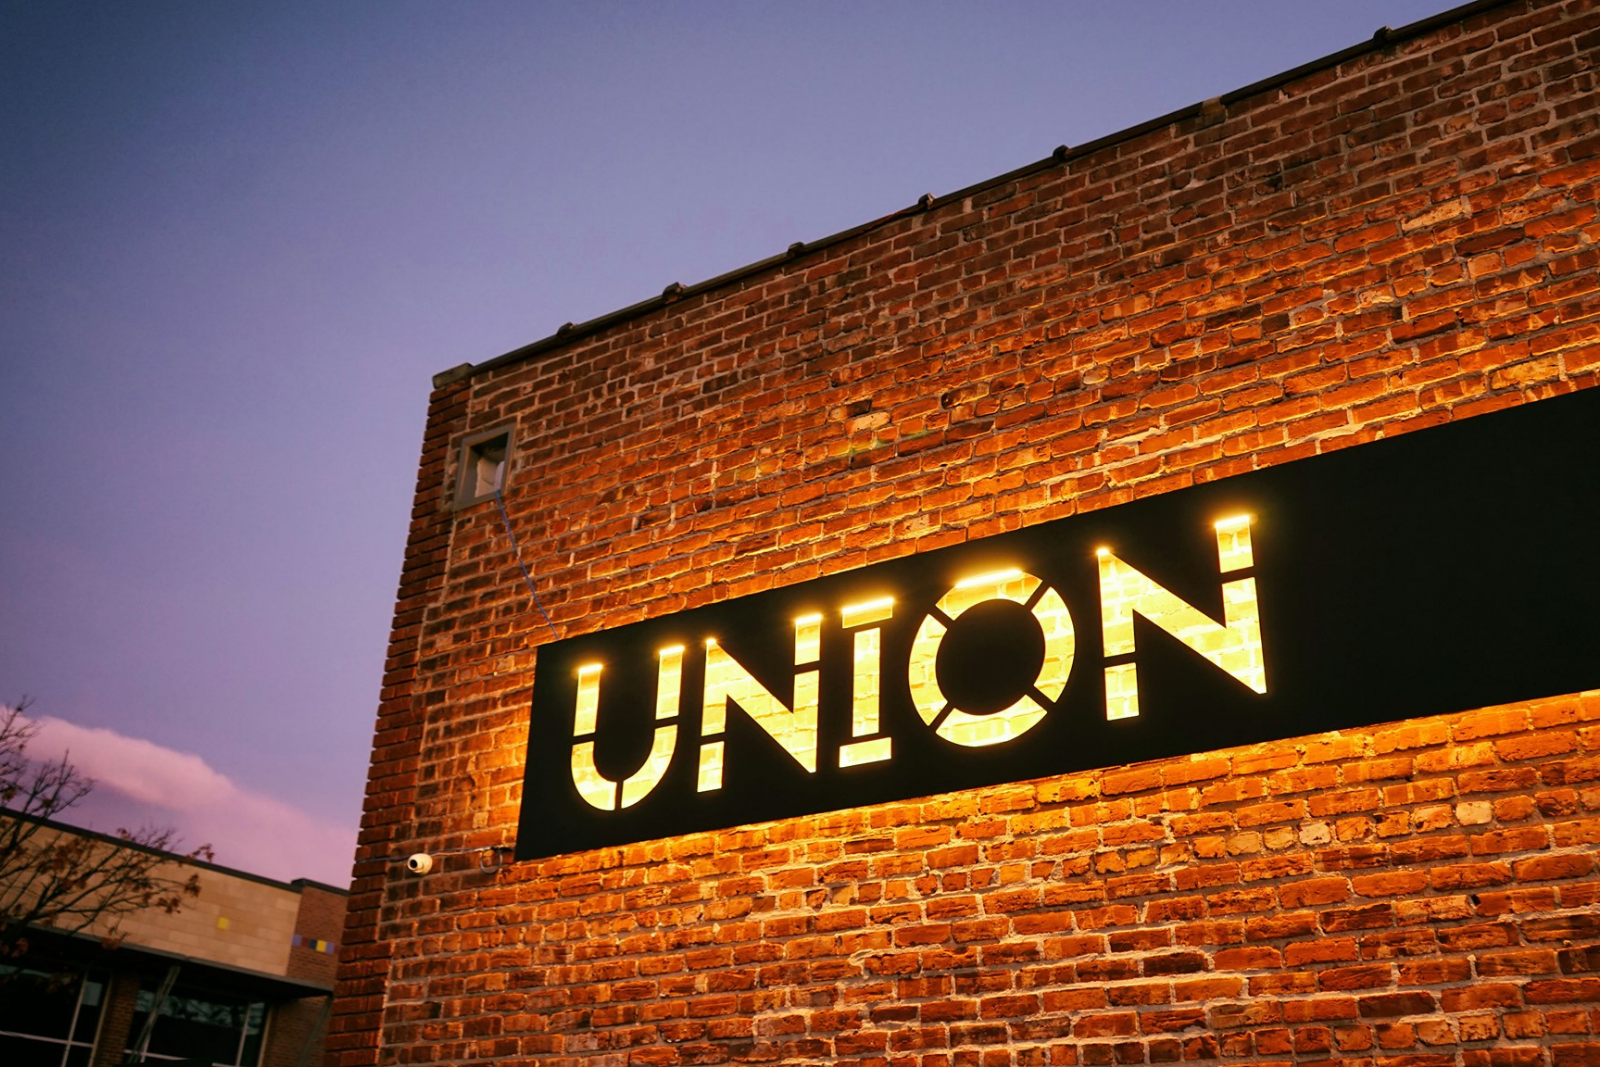 Union building at dusk A black steel Union sign hangs on a red brick wall and is illuminated with white light from behind